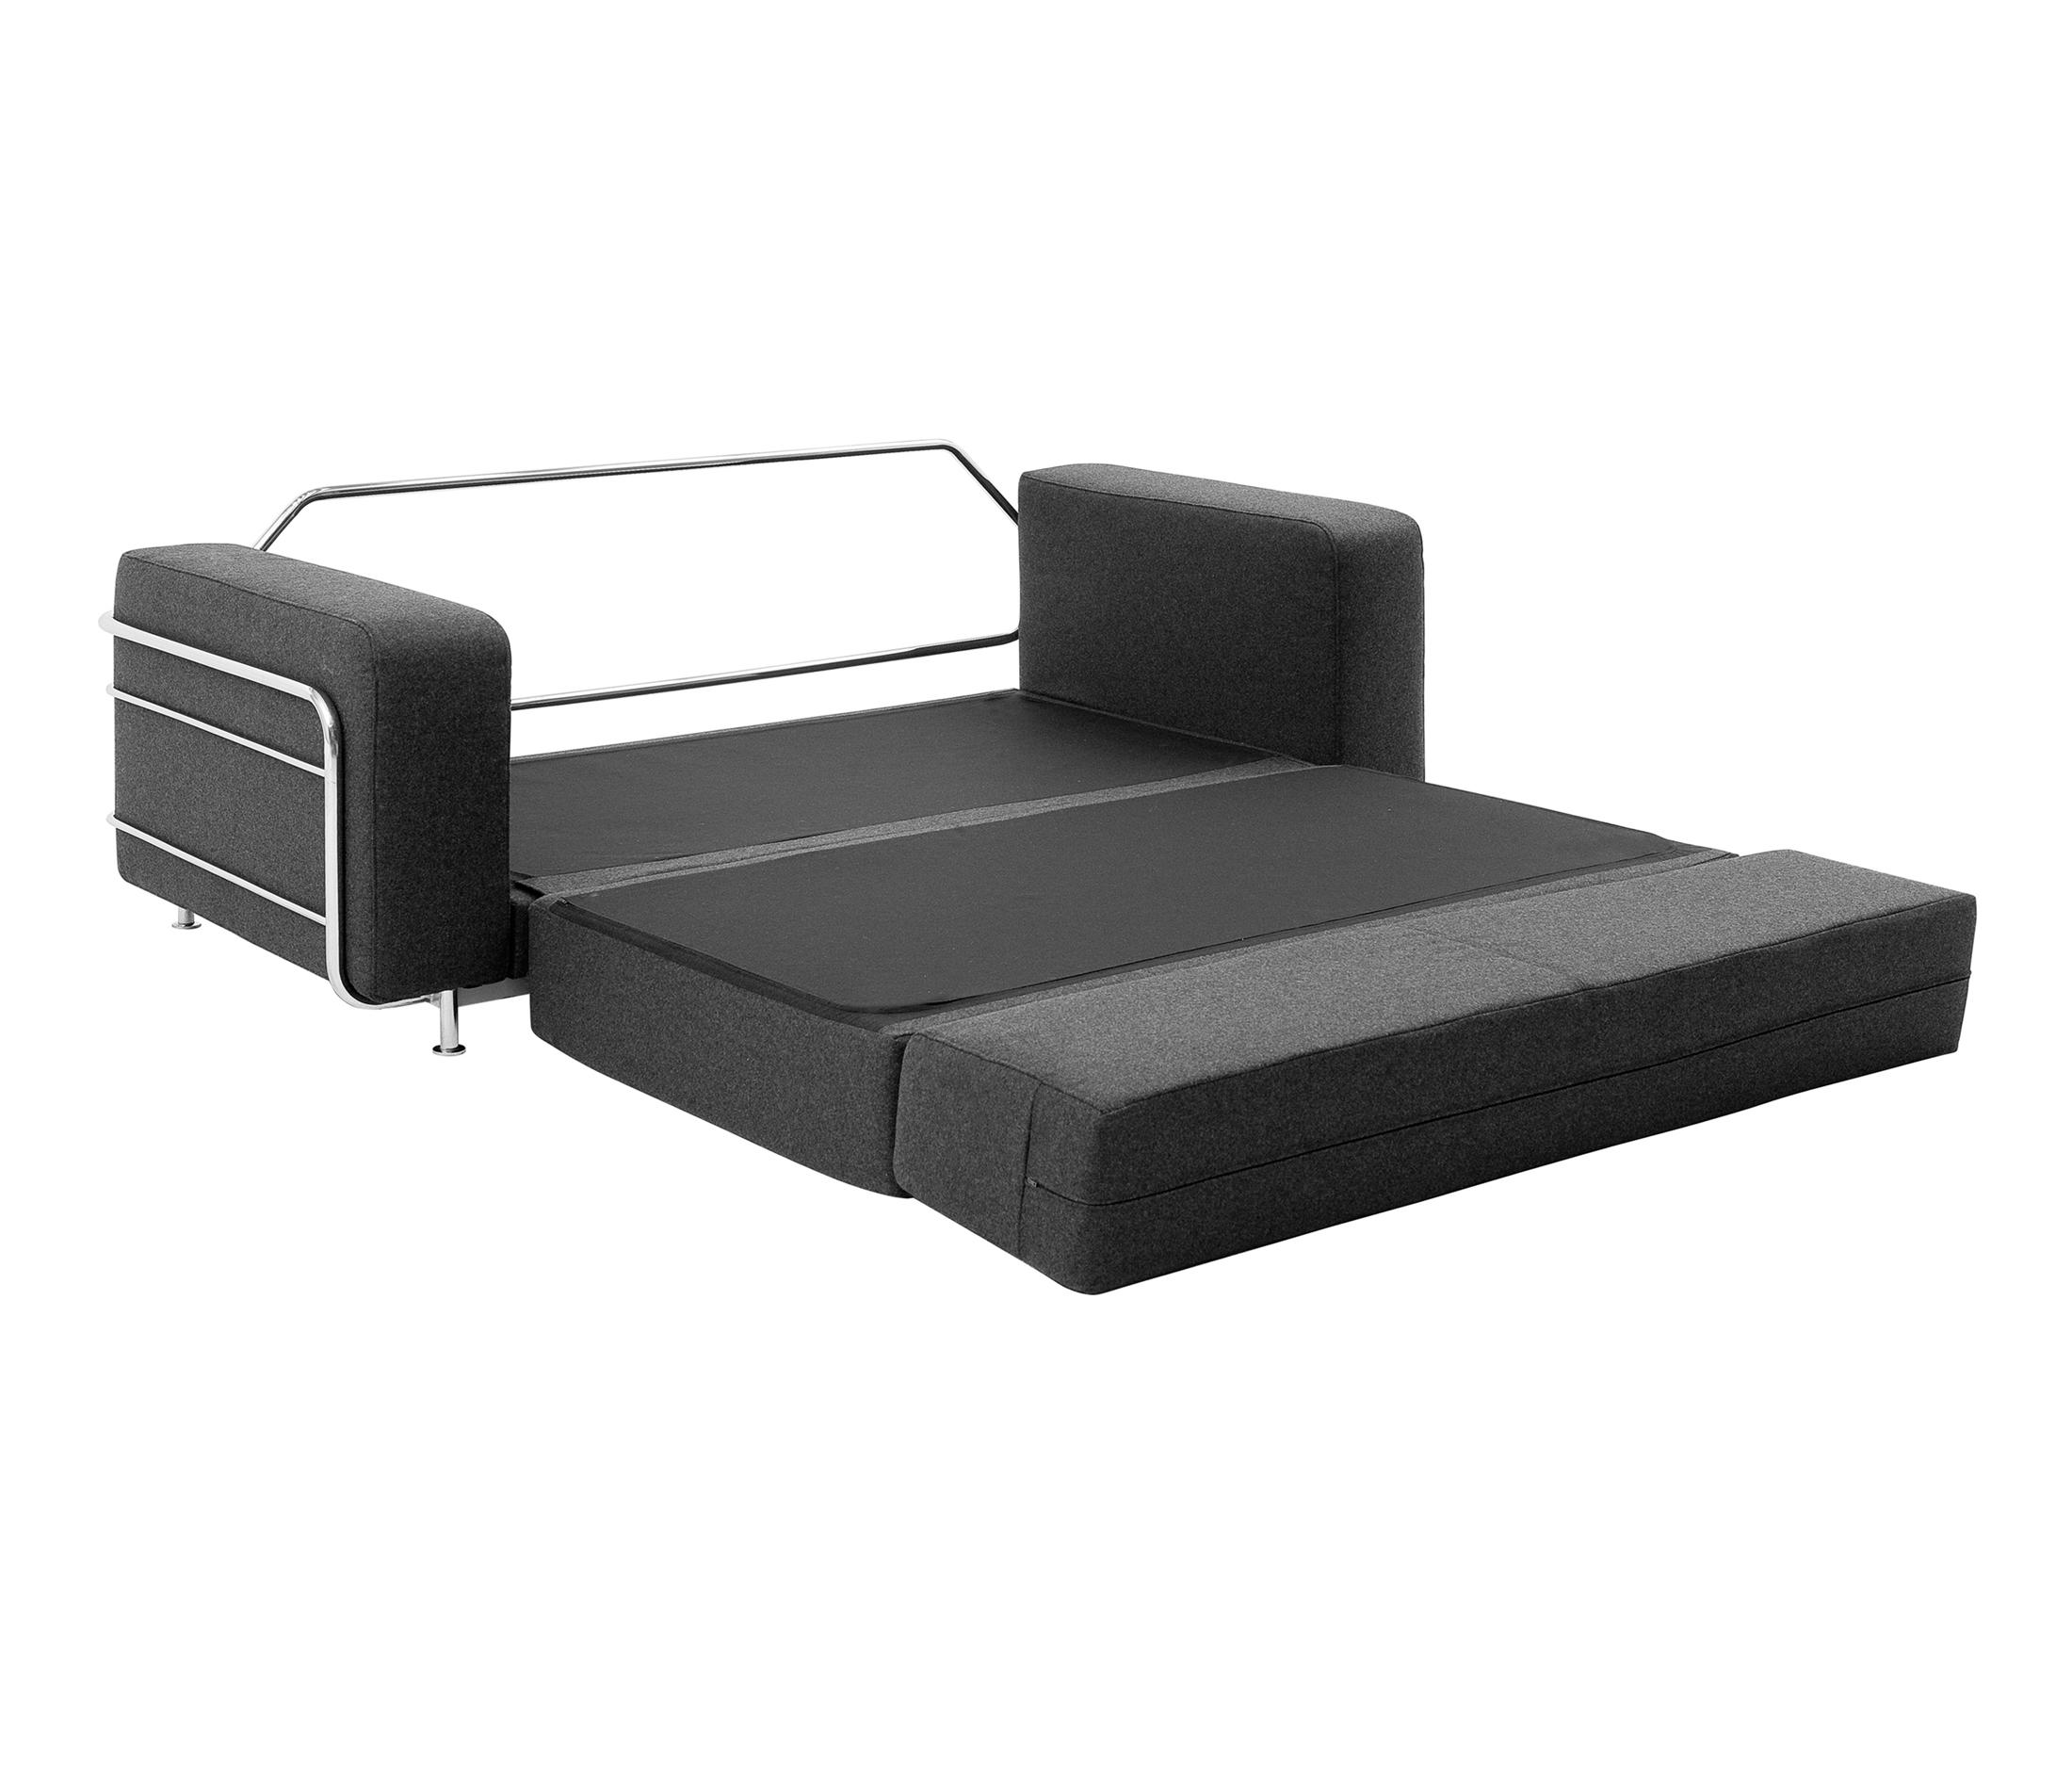 ... Silver Sofa By Softline A/S | Sofa Beds ...